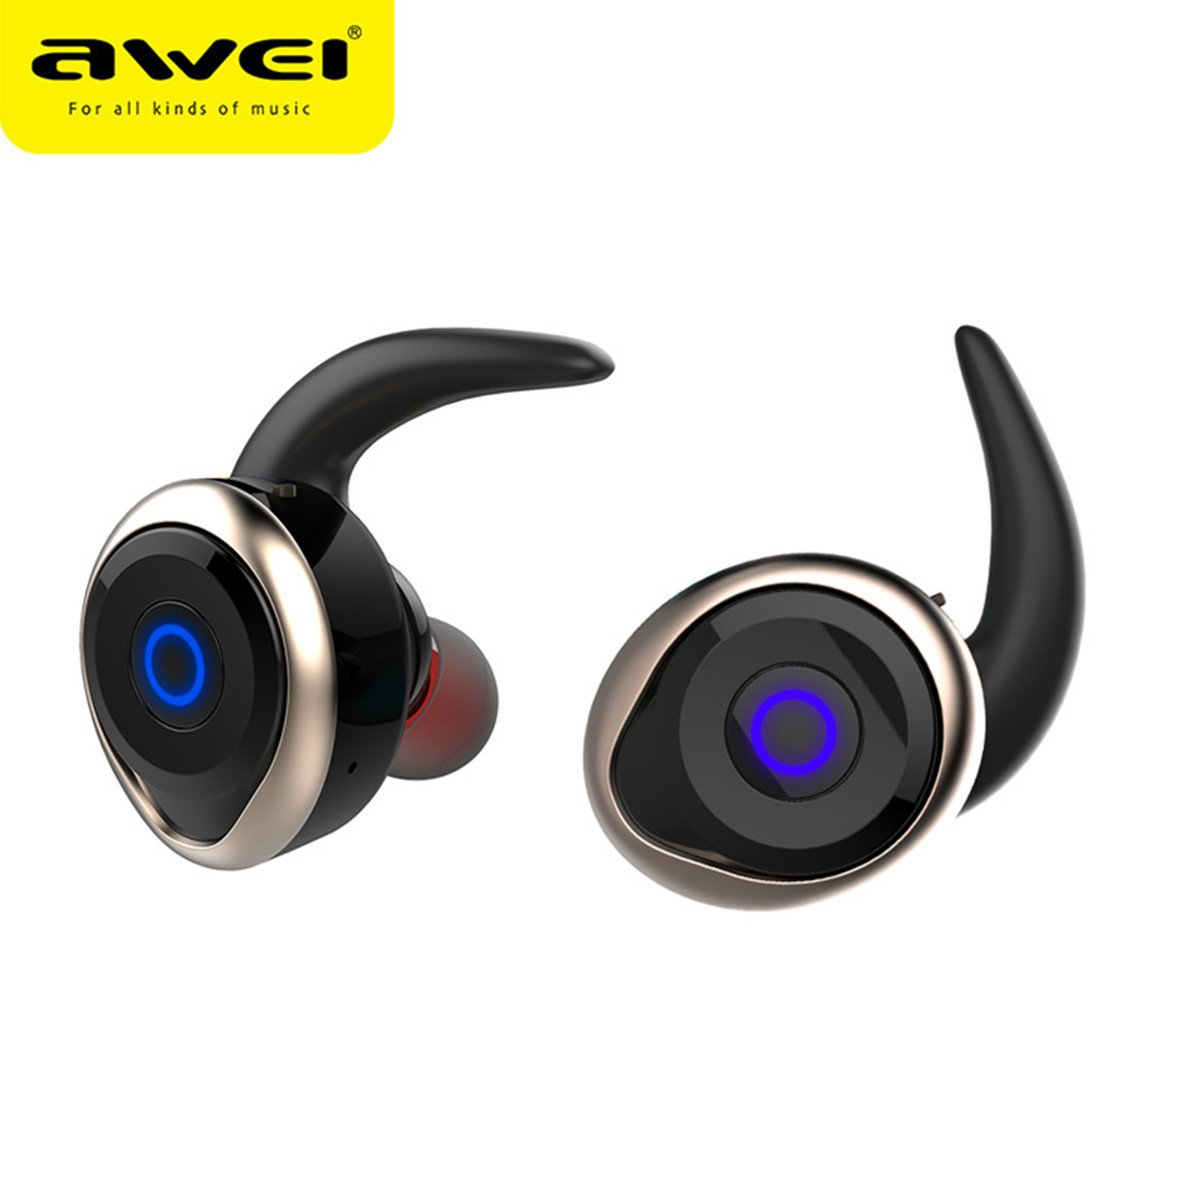 Awei T1 Single/Pairs Ture Wireless Get Rid Of Wire Binding earbuds, One Button Operation Bluetooth V4.2 Waterproof IPX4 Sport Headphones for Running Gym Exercise Hands-free Calling for iphone7(Gold)